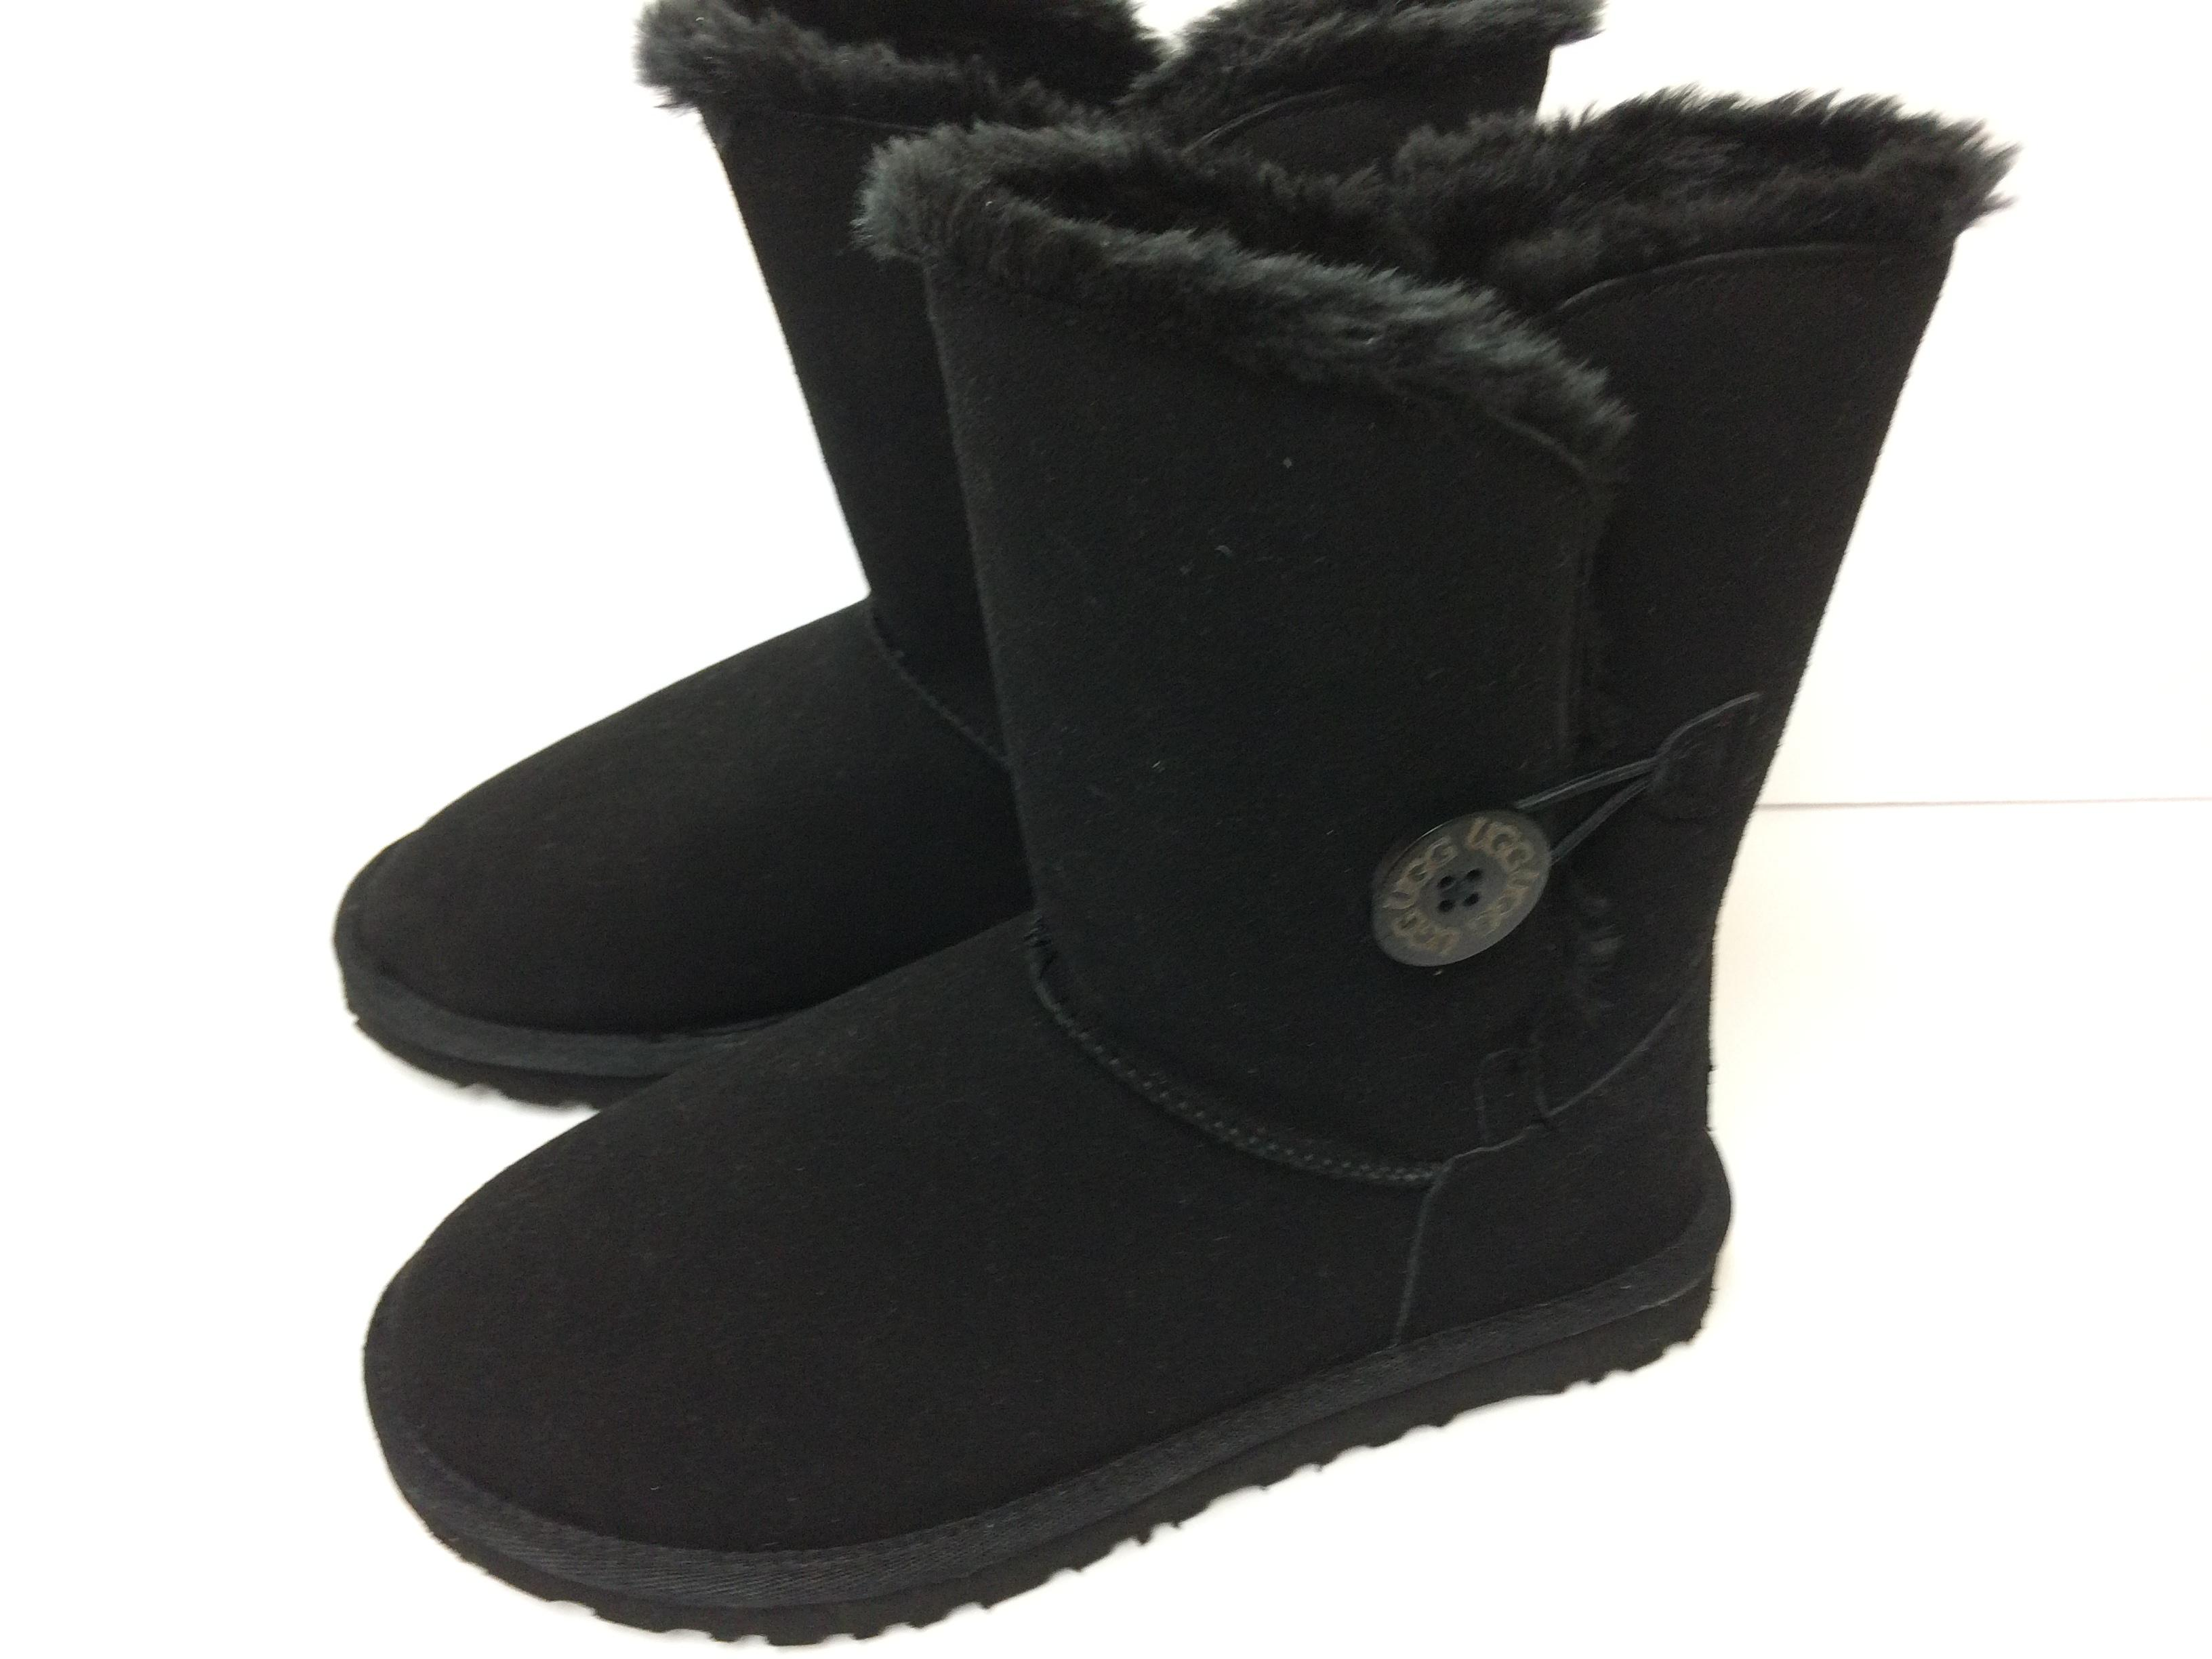 UGG Australia Elastic Loop Closure Engraved Button Suede/Sheepskin Water Resistant Uggs Black Boots